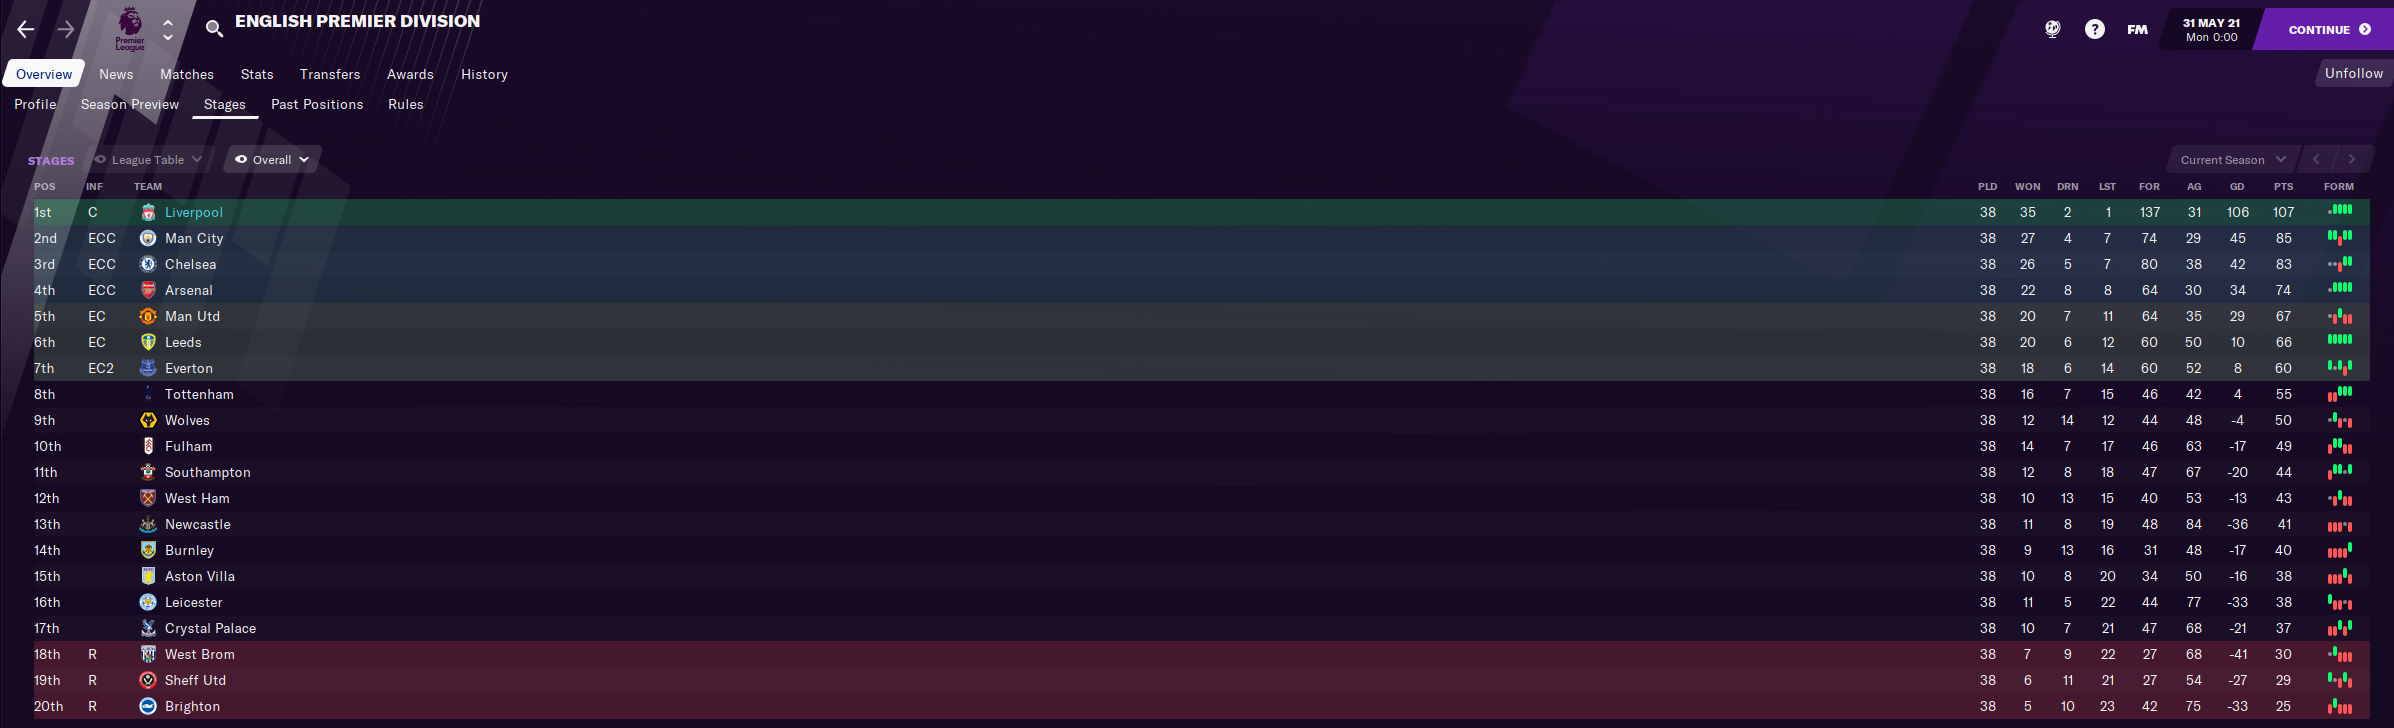 lfc_league_a.png